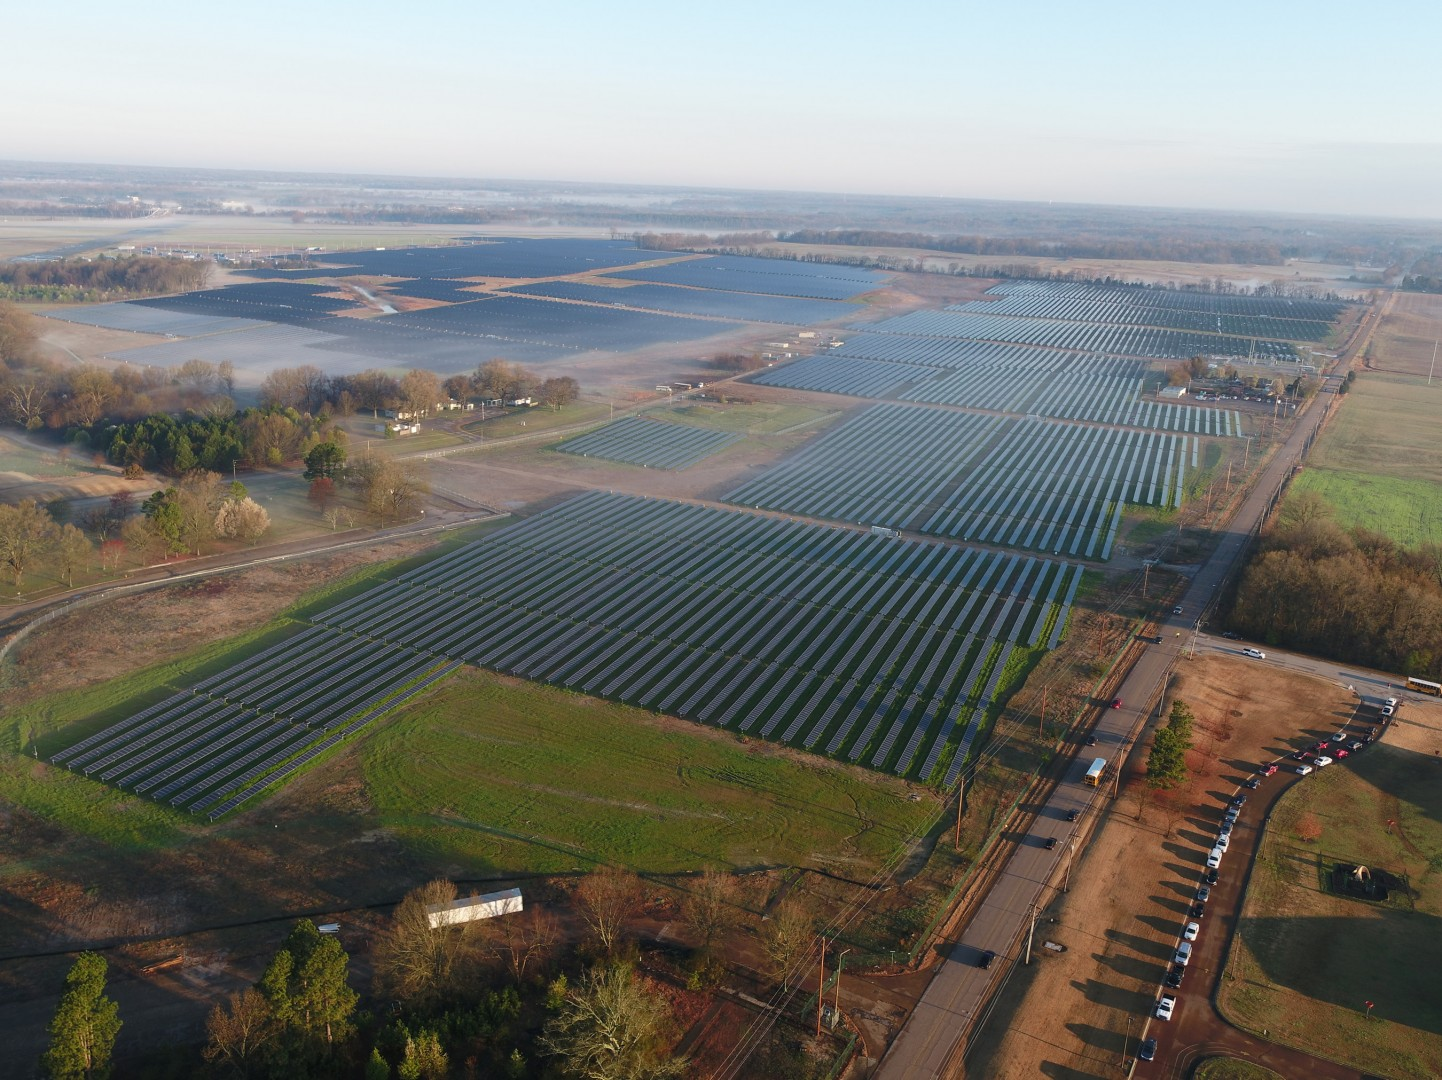 Silicon Ranch employed over 300 people during the construction phase of the project, which has a generation capacity of 53MW. Image: Silicon Ranch